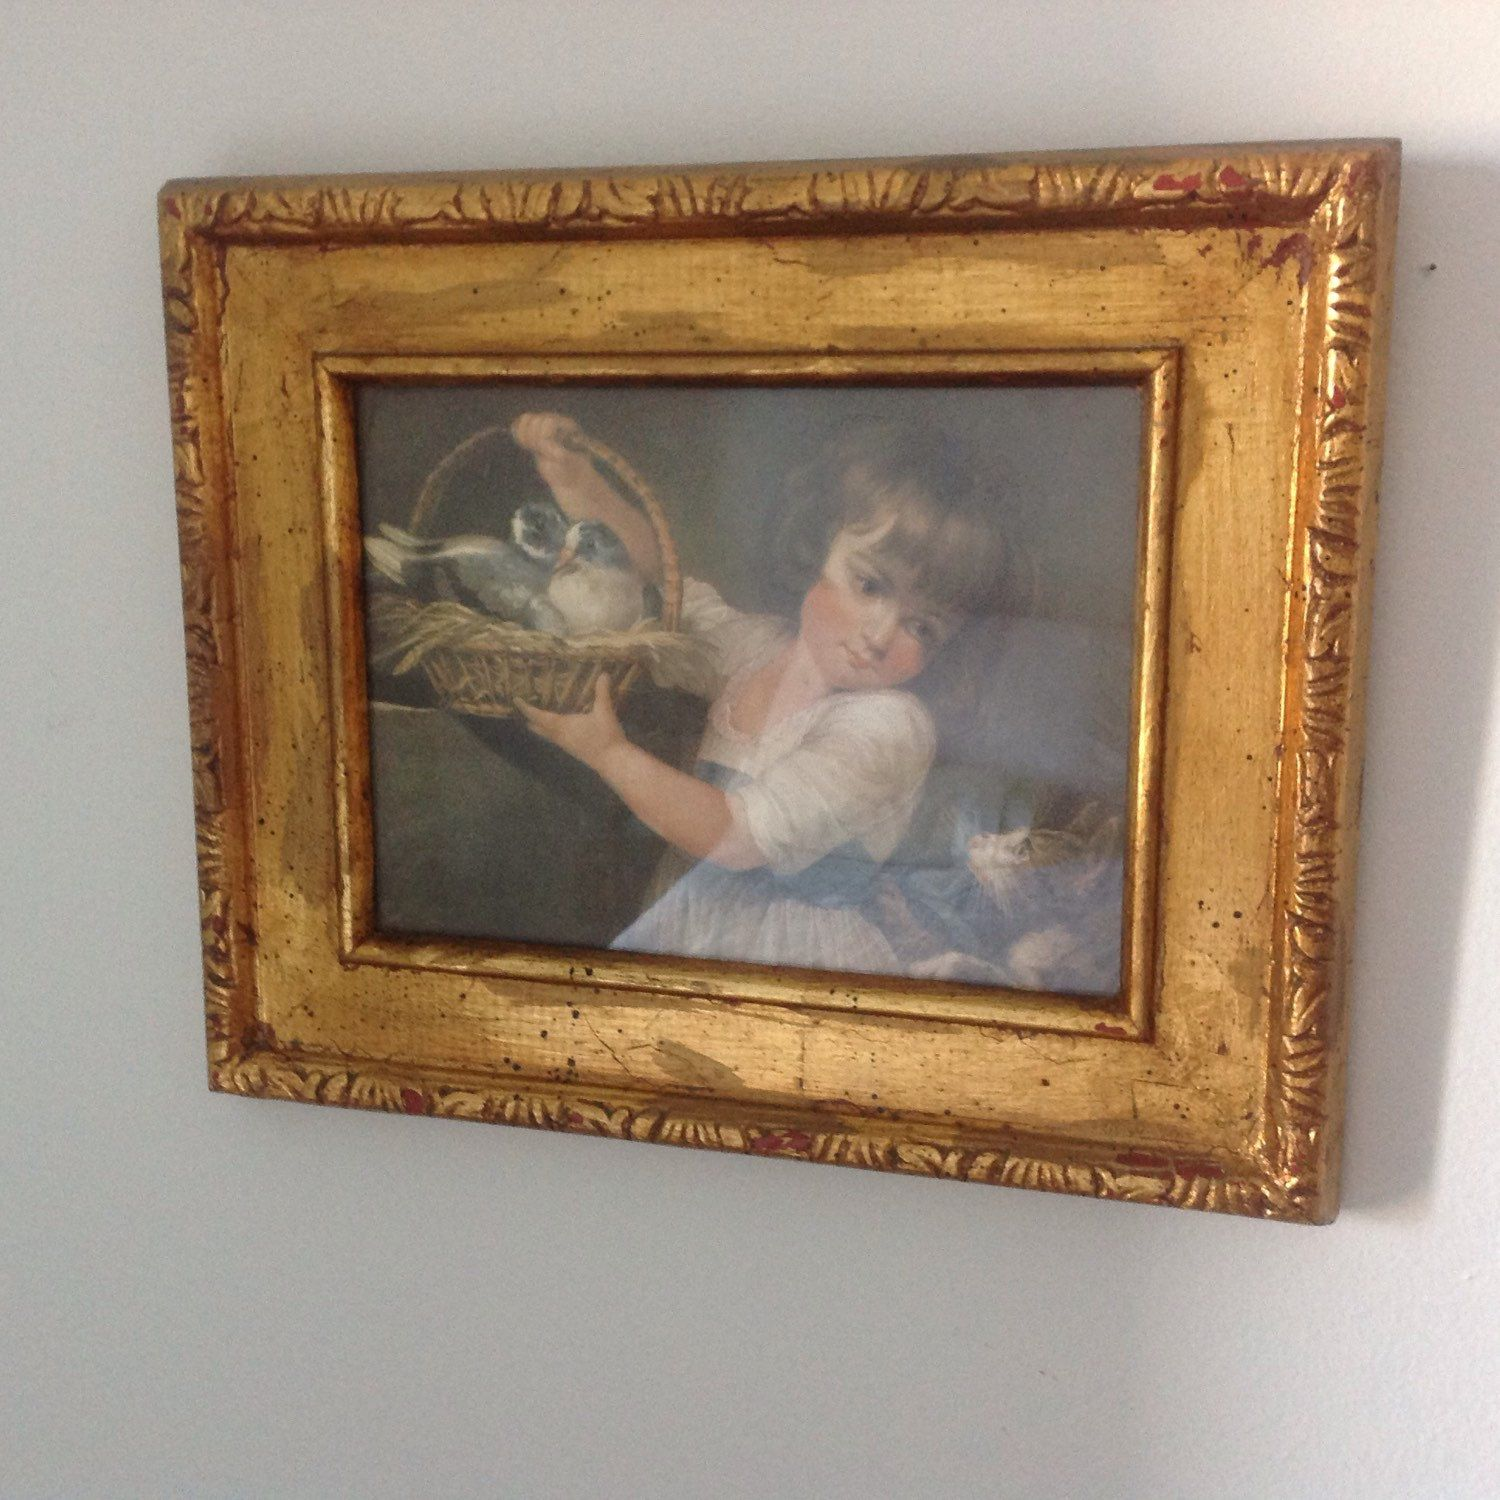 Vintage Germany etching signed by the artist-probably back from 1950-60s in beautiful original frame.